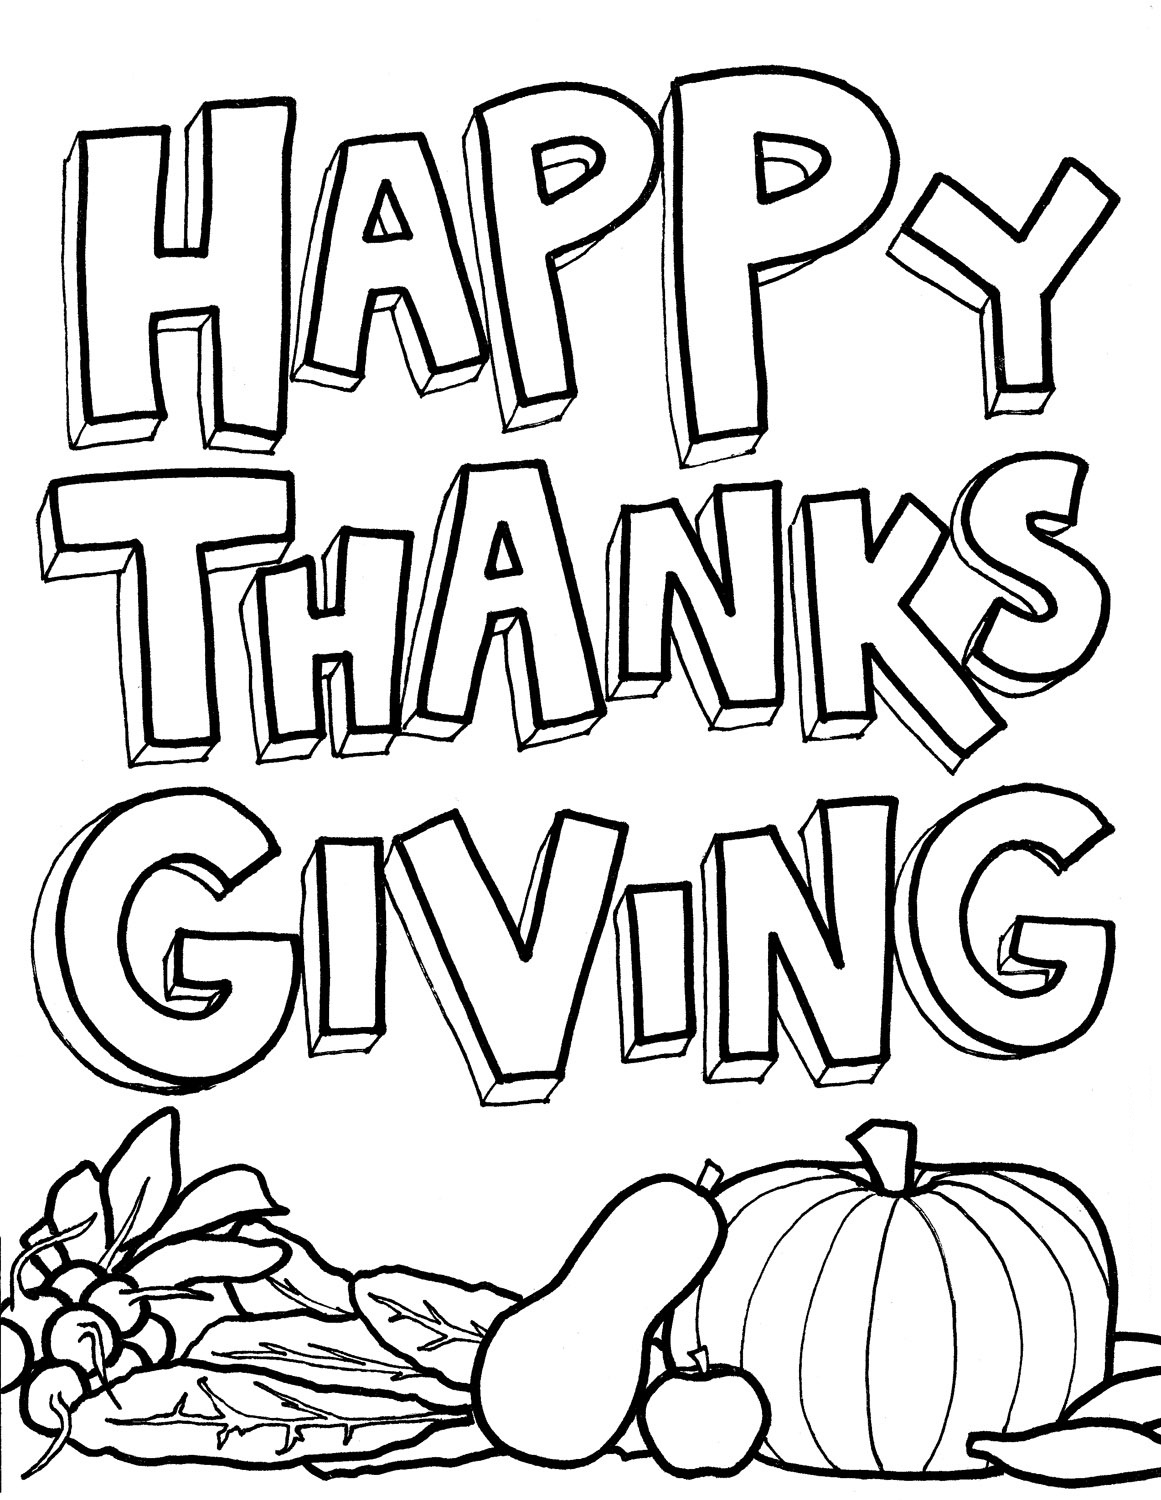 Happy Thanksgiving Coloring Child Coloring Thanksgiving Coloring Book Pages